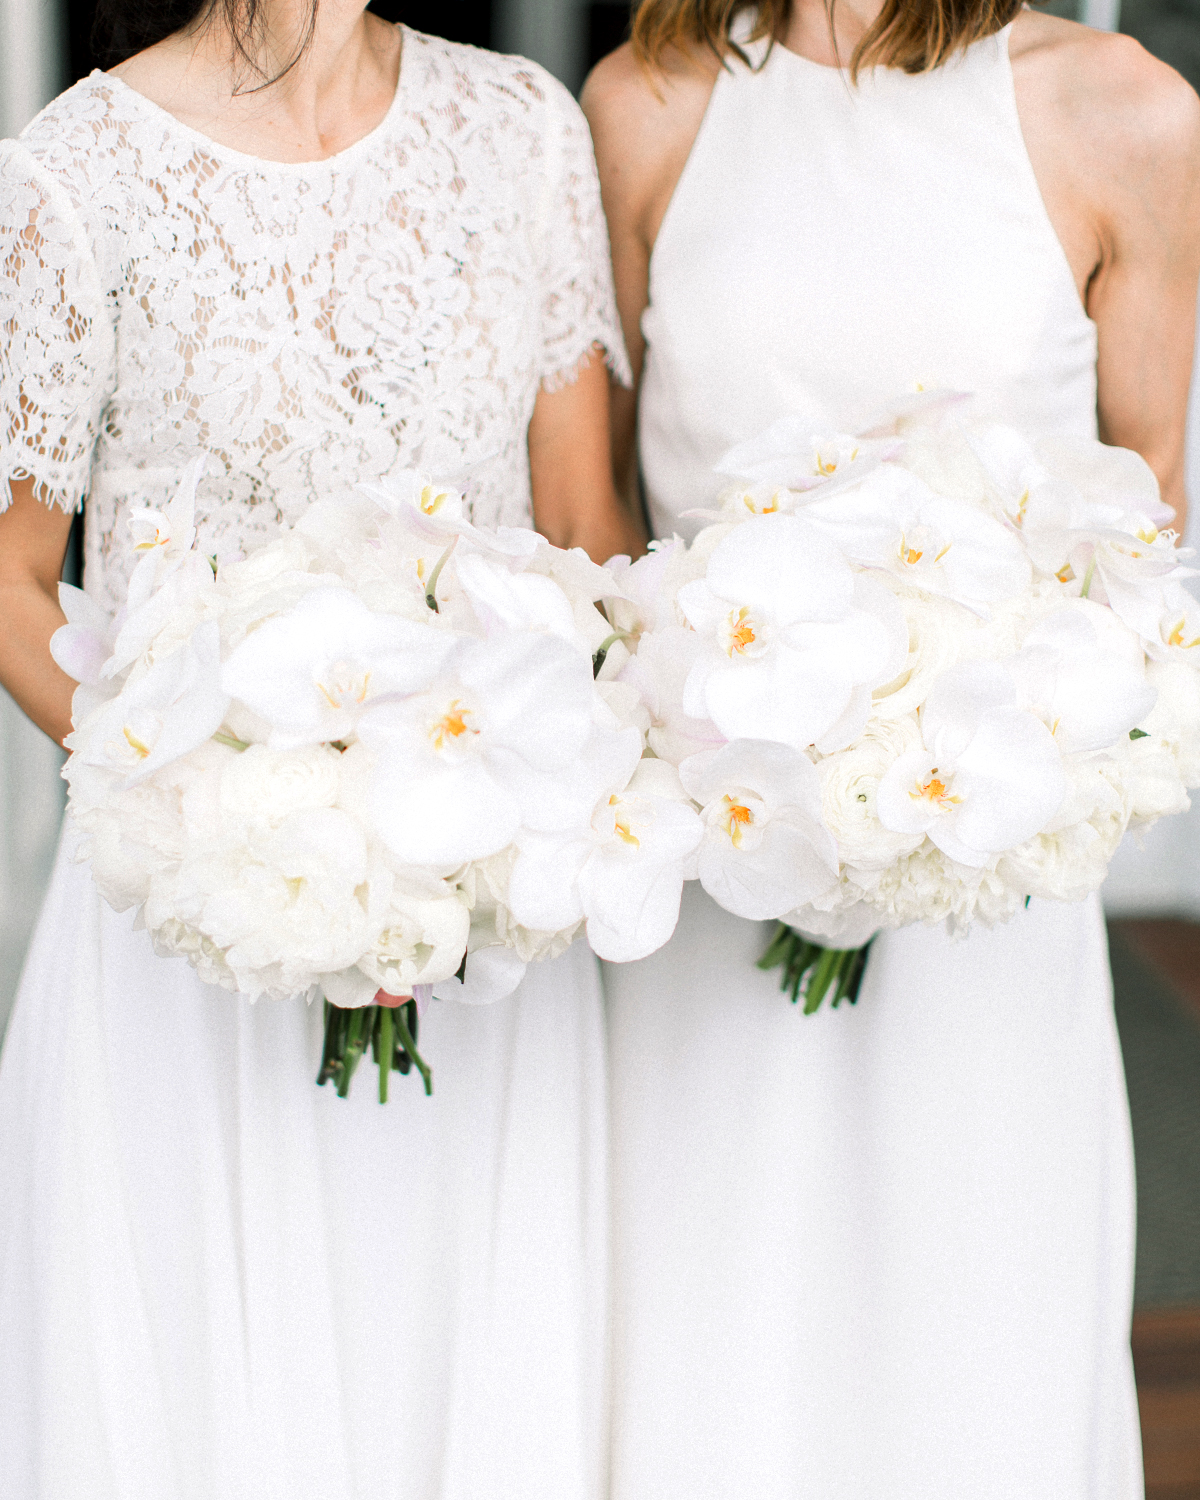 matching all white floral bouquets